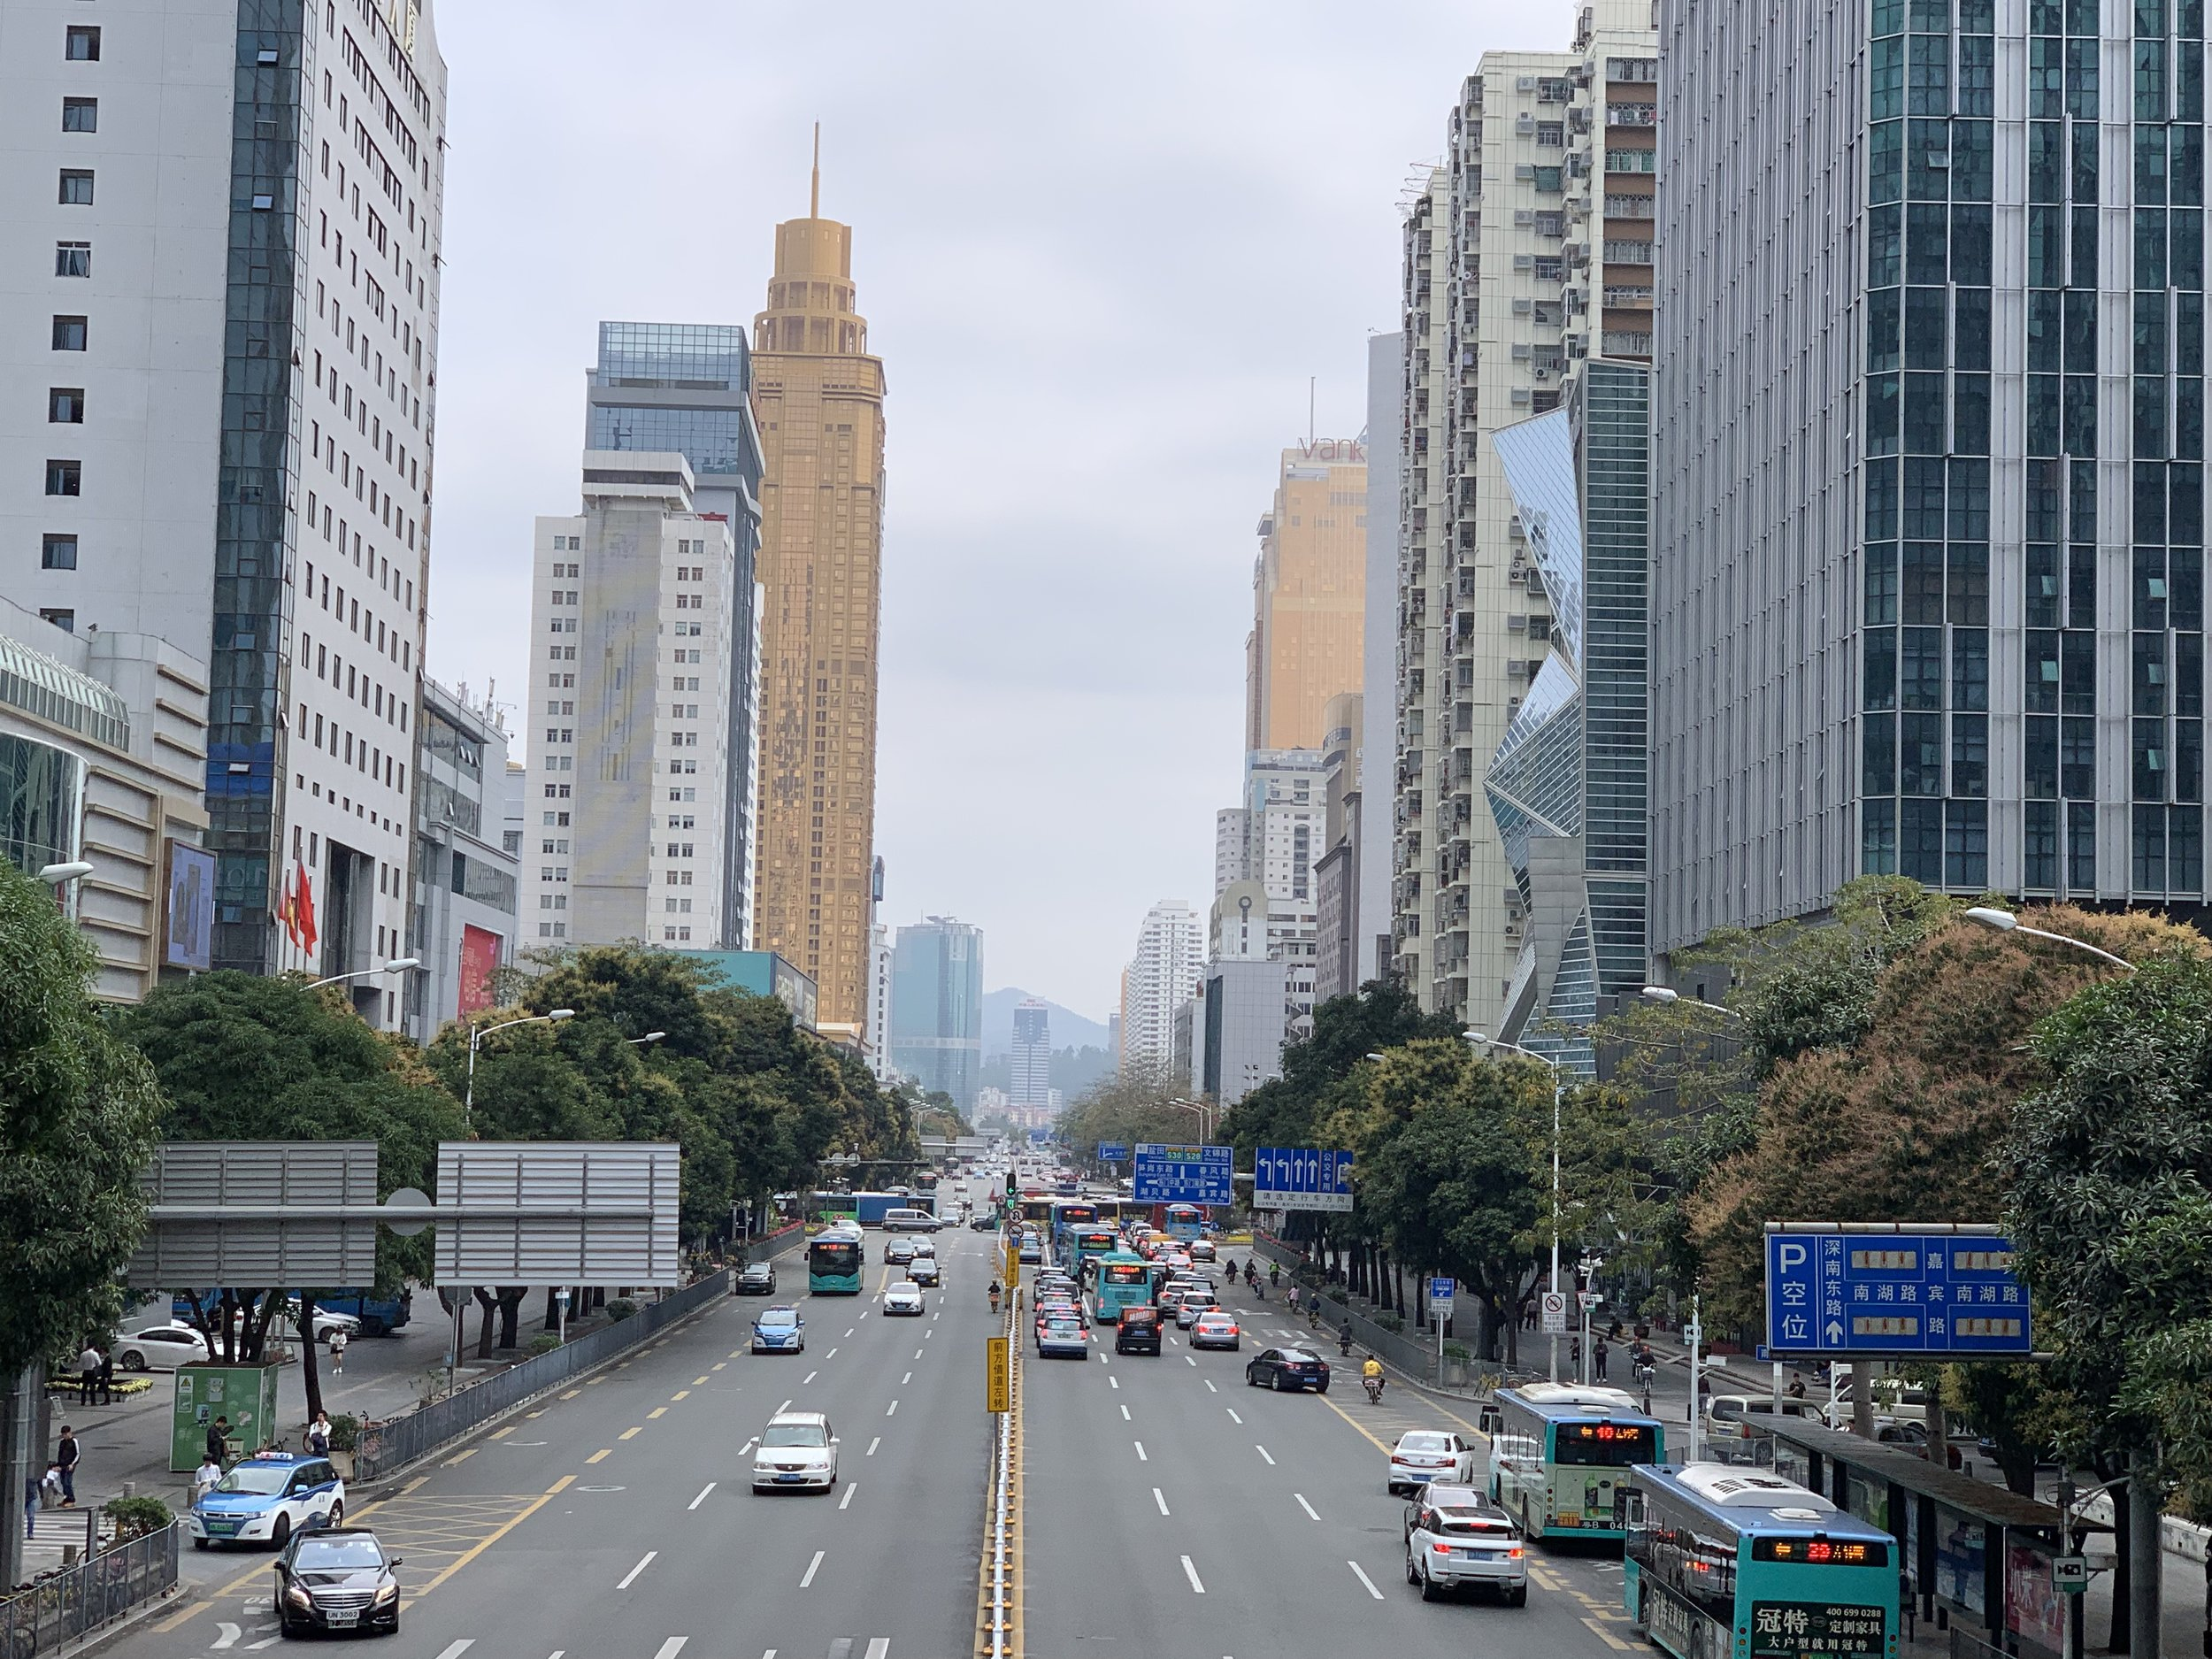 Shennan Avenue in 2019 in Shenzhen, China. Photo: (C) Remko Tanis